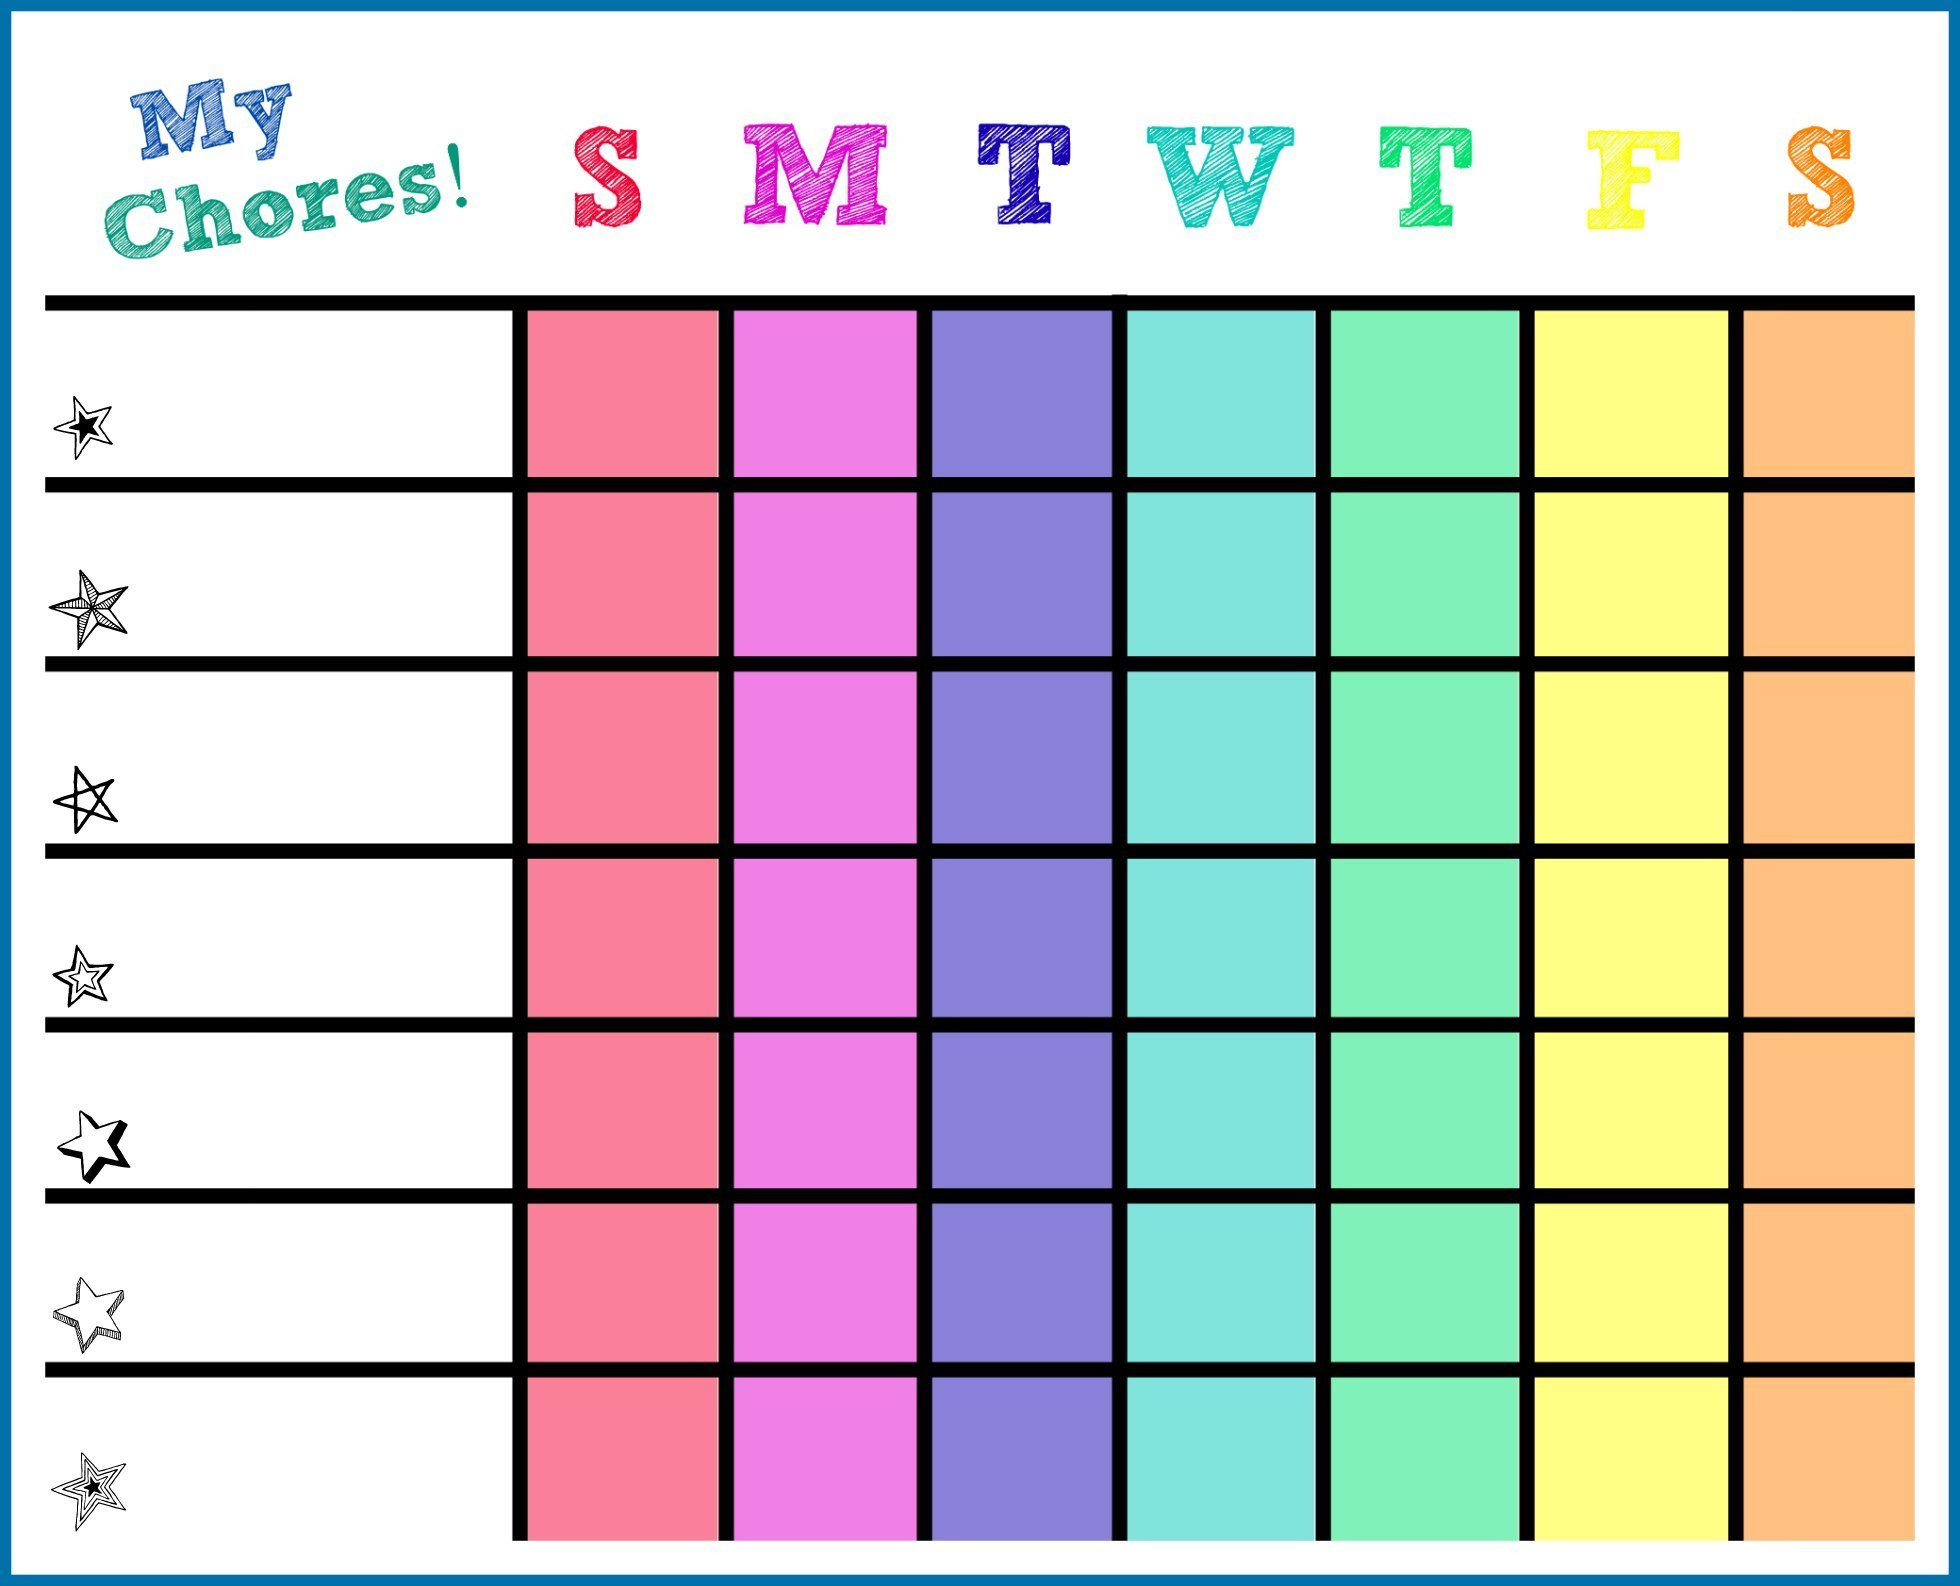 Daily Chore Chart Template 5 Free Chore Chart Templates Word Excel Pdf formats